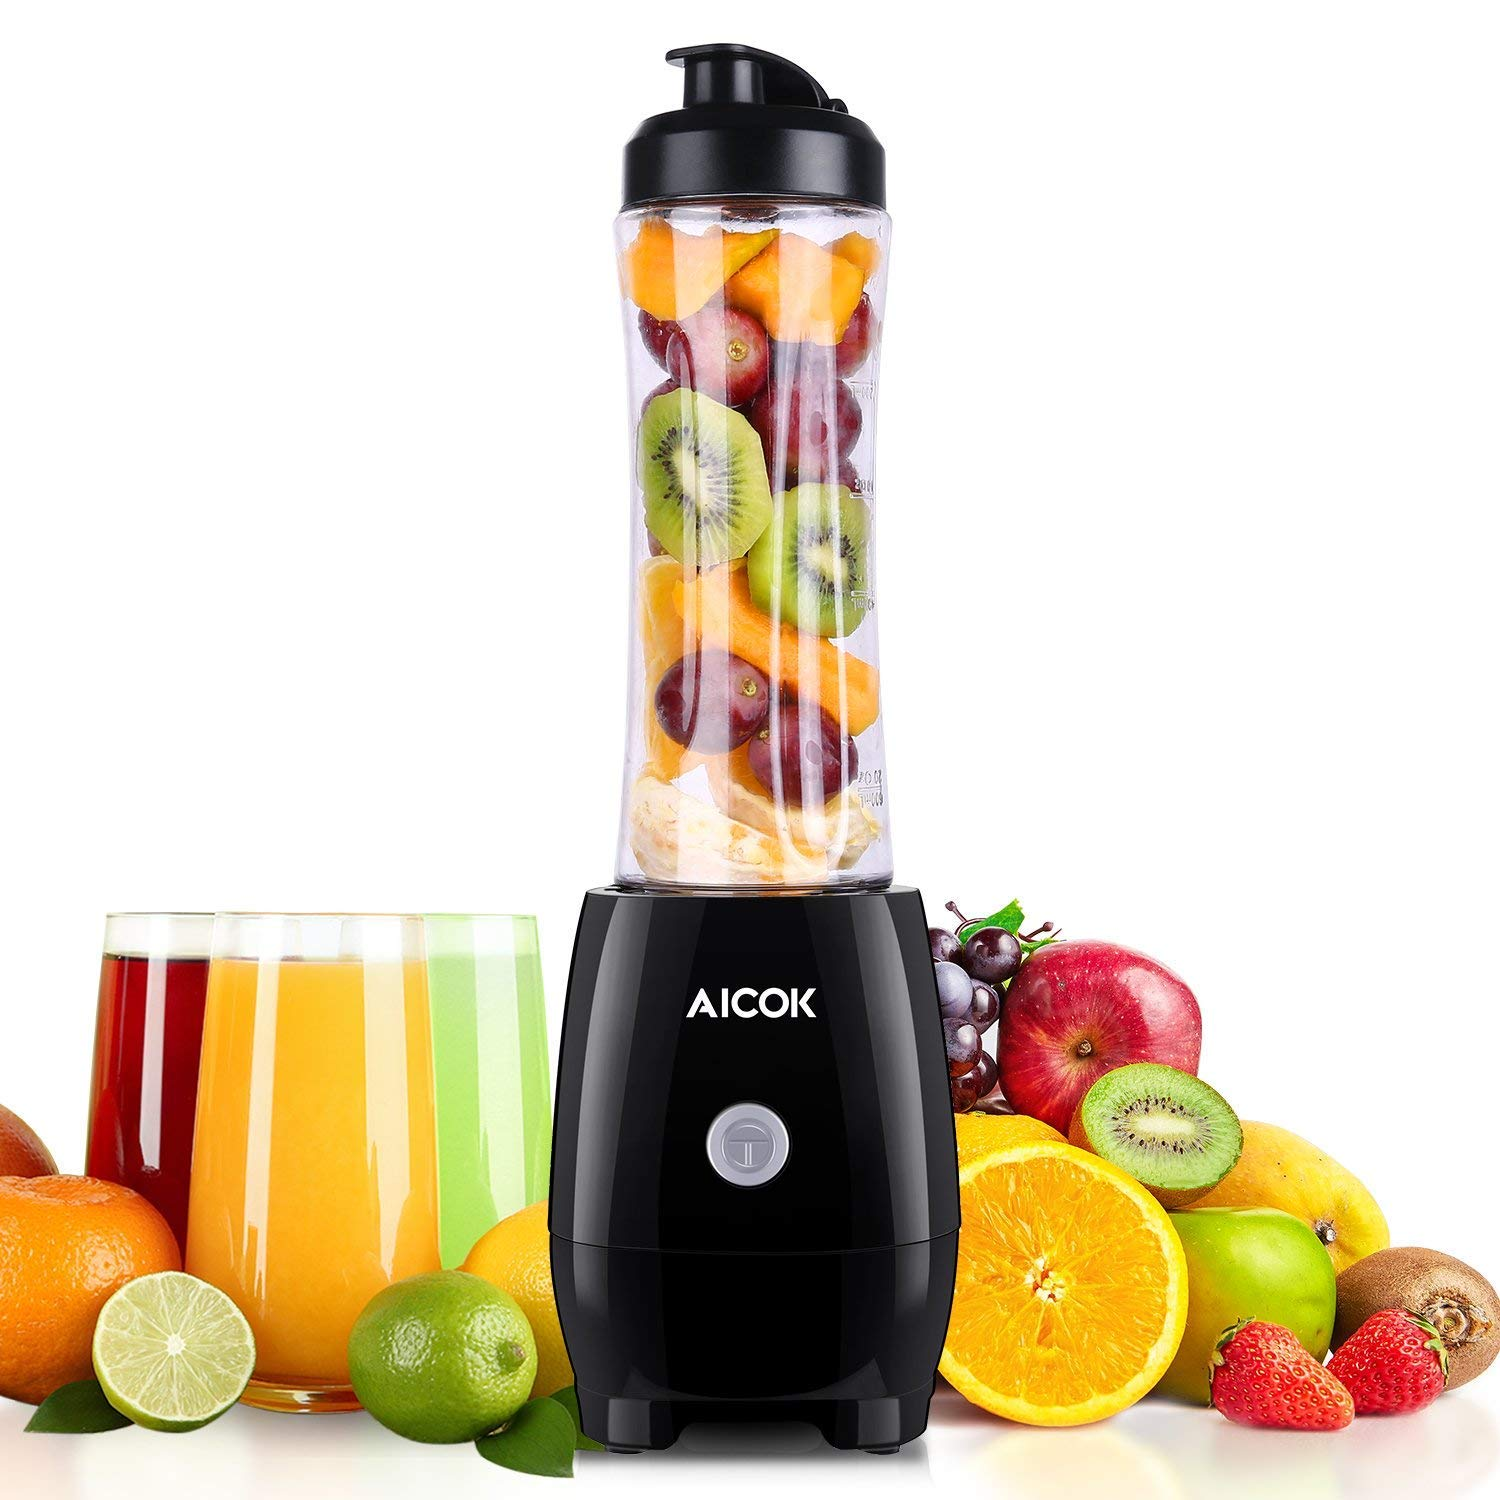 Smoothie Blender Aicok Personal Blenders with Travel Portable Bottle, Electric Mini Blender Stainless Steel 4-Blade for Juice, Shakes and Baby Food, 300W